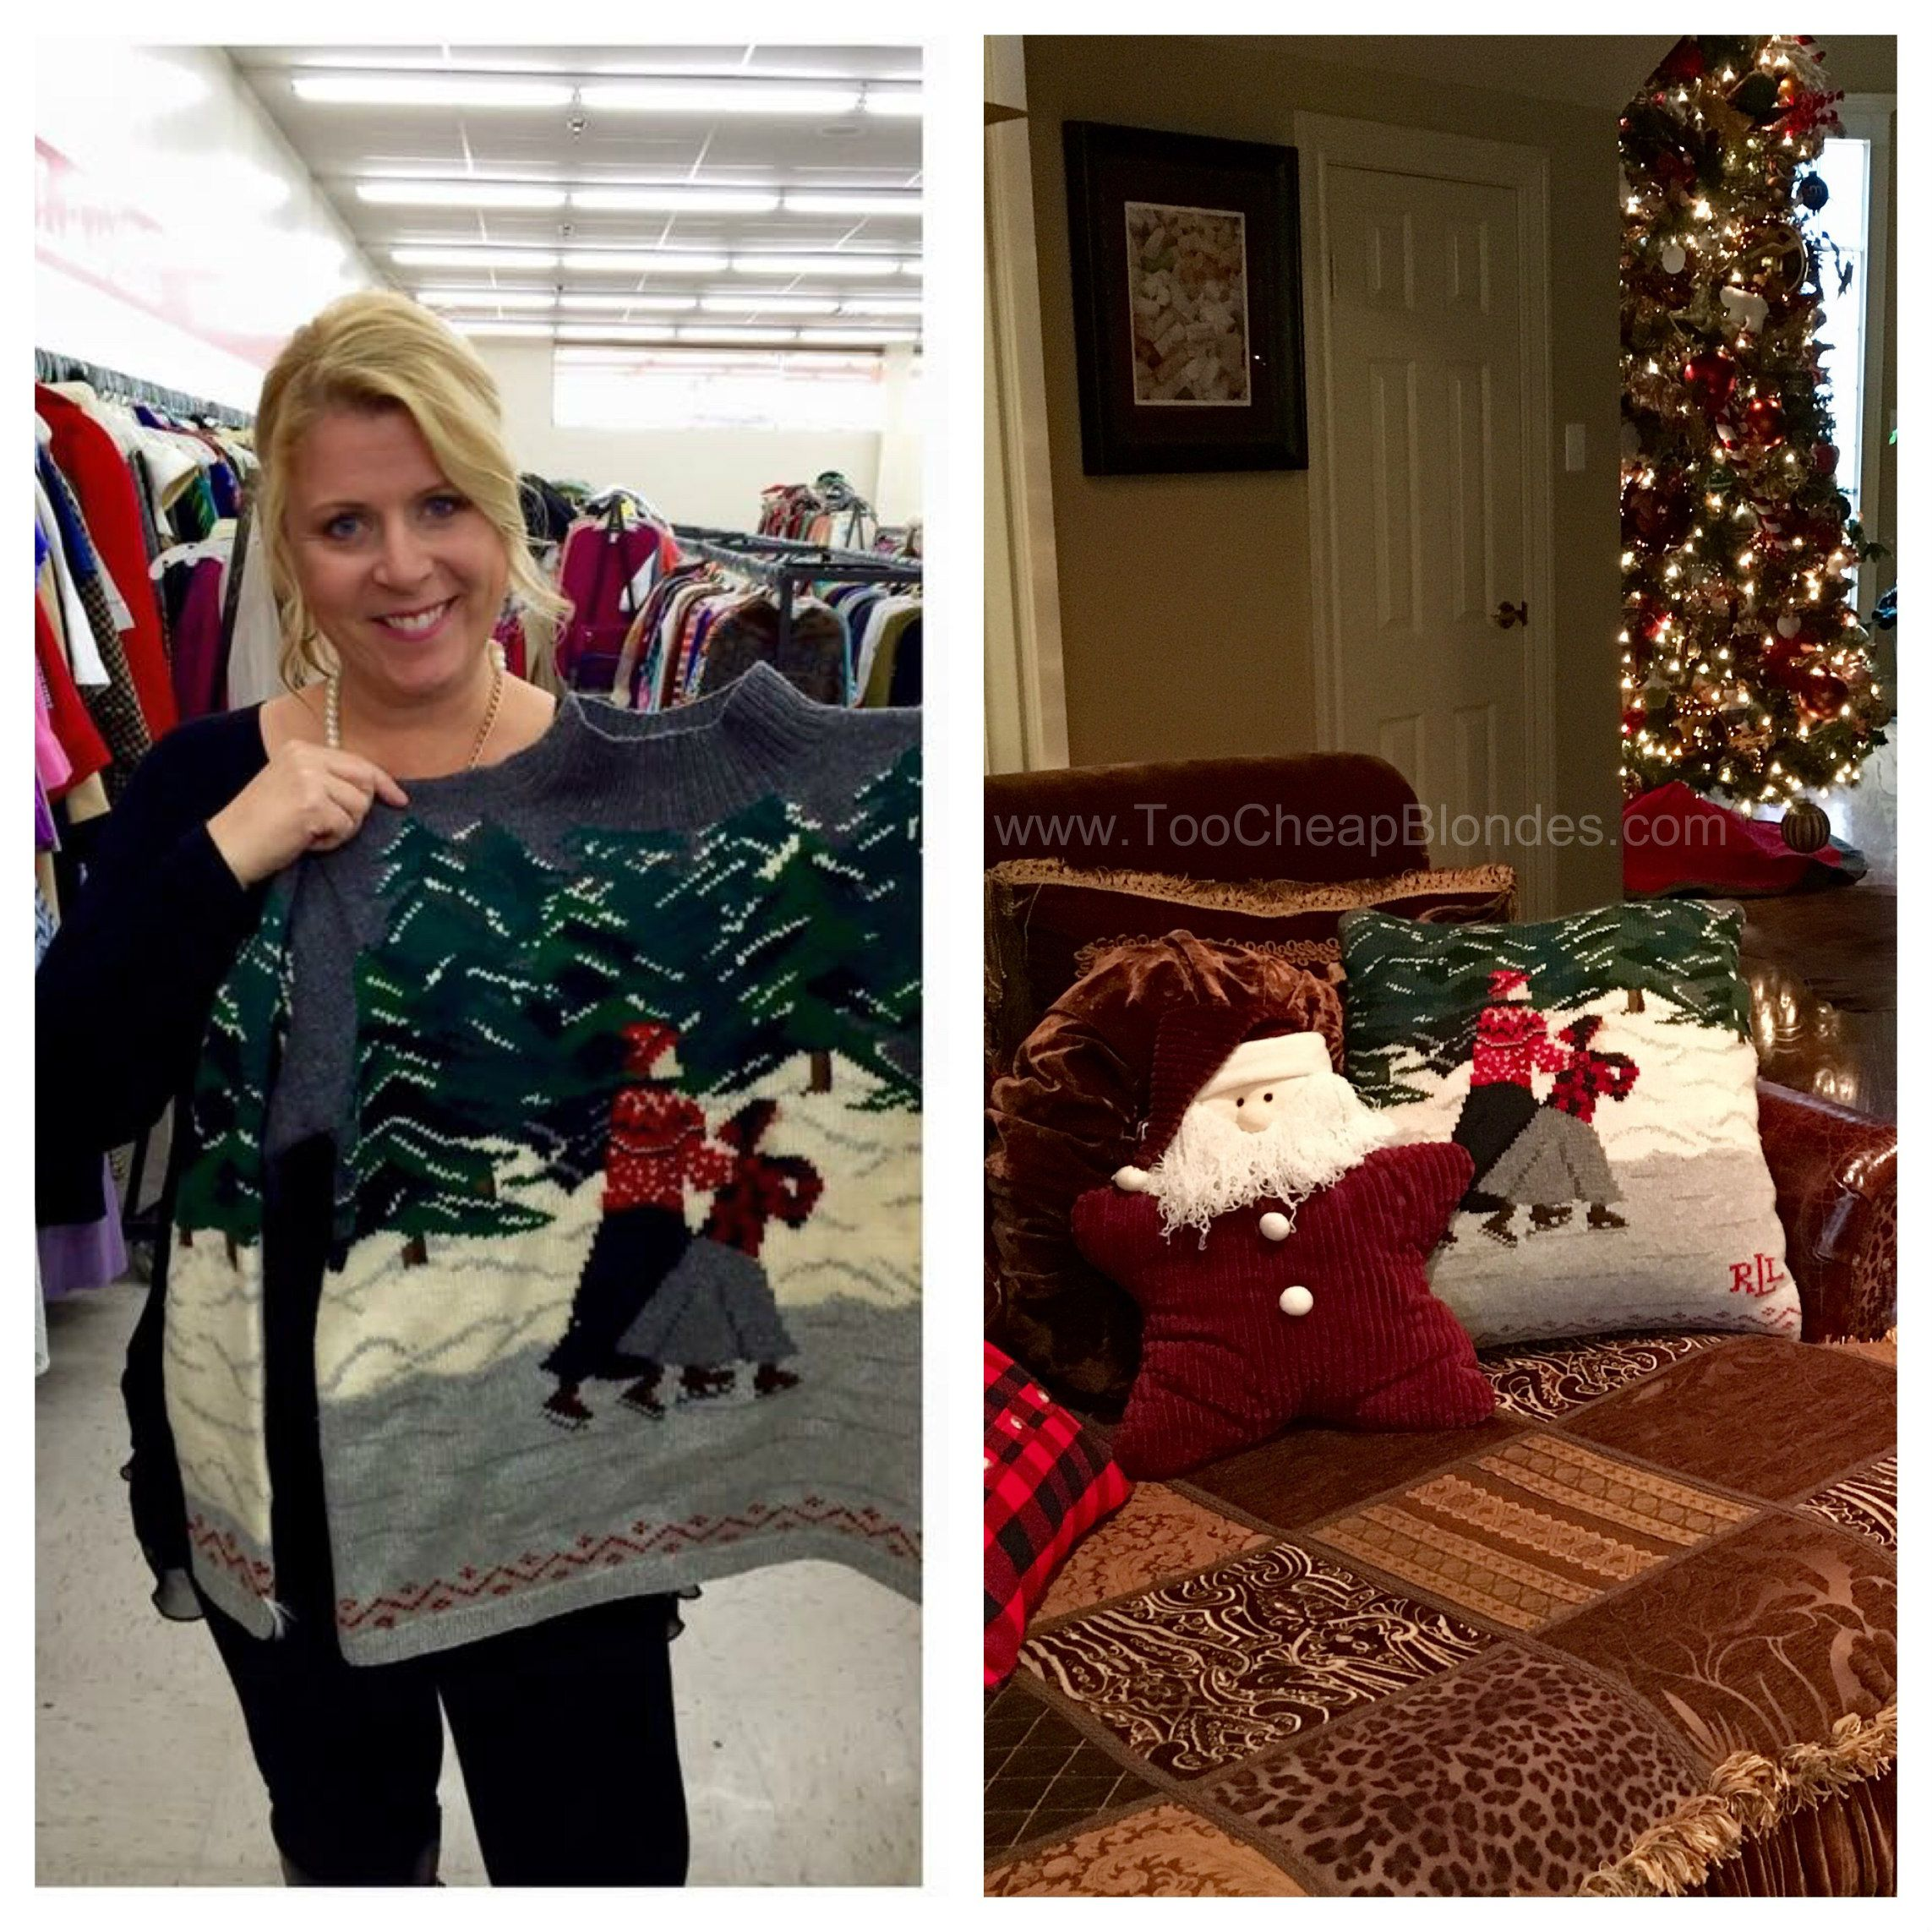 Christmas Decorations All Year Long: After Finding This Amazing Ralph Lauren Christmas Sweater